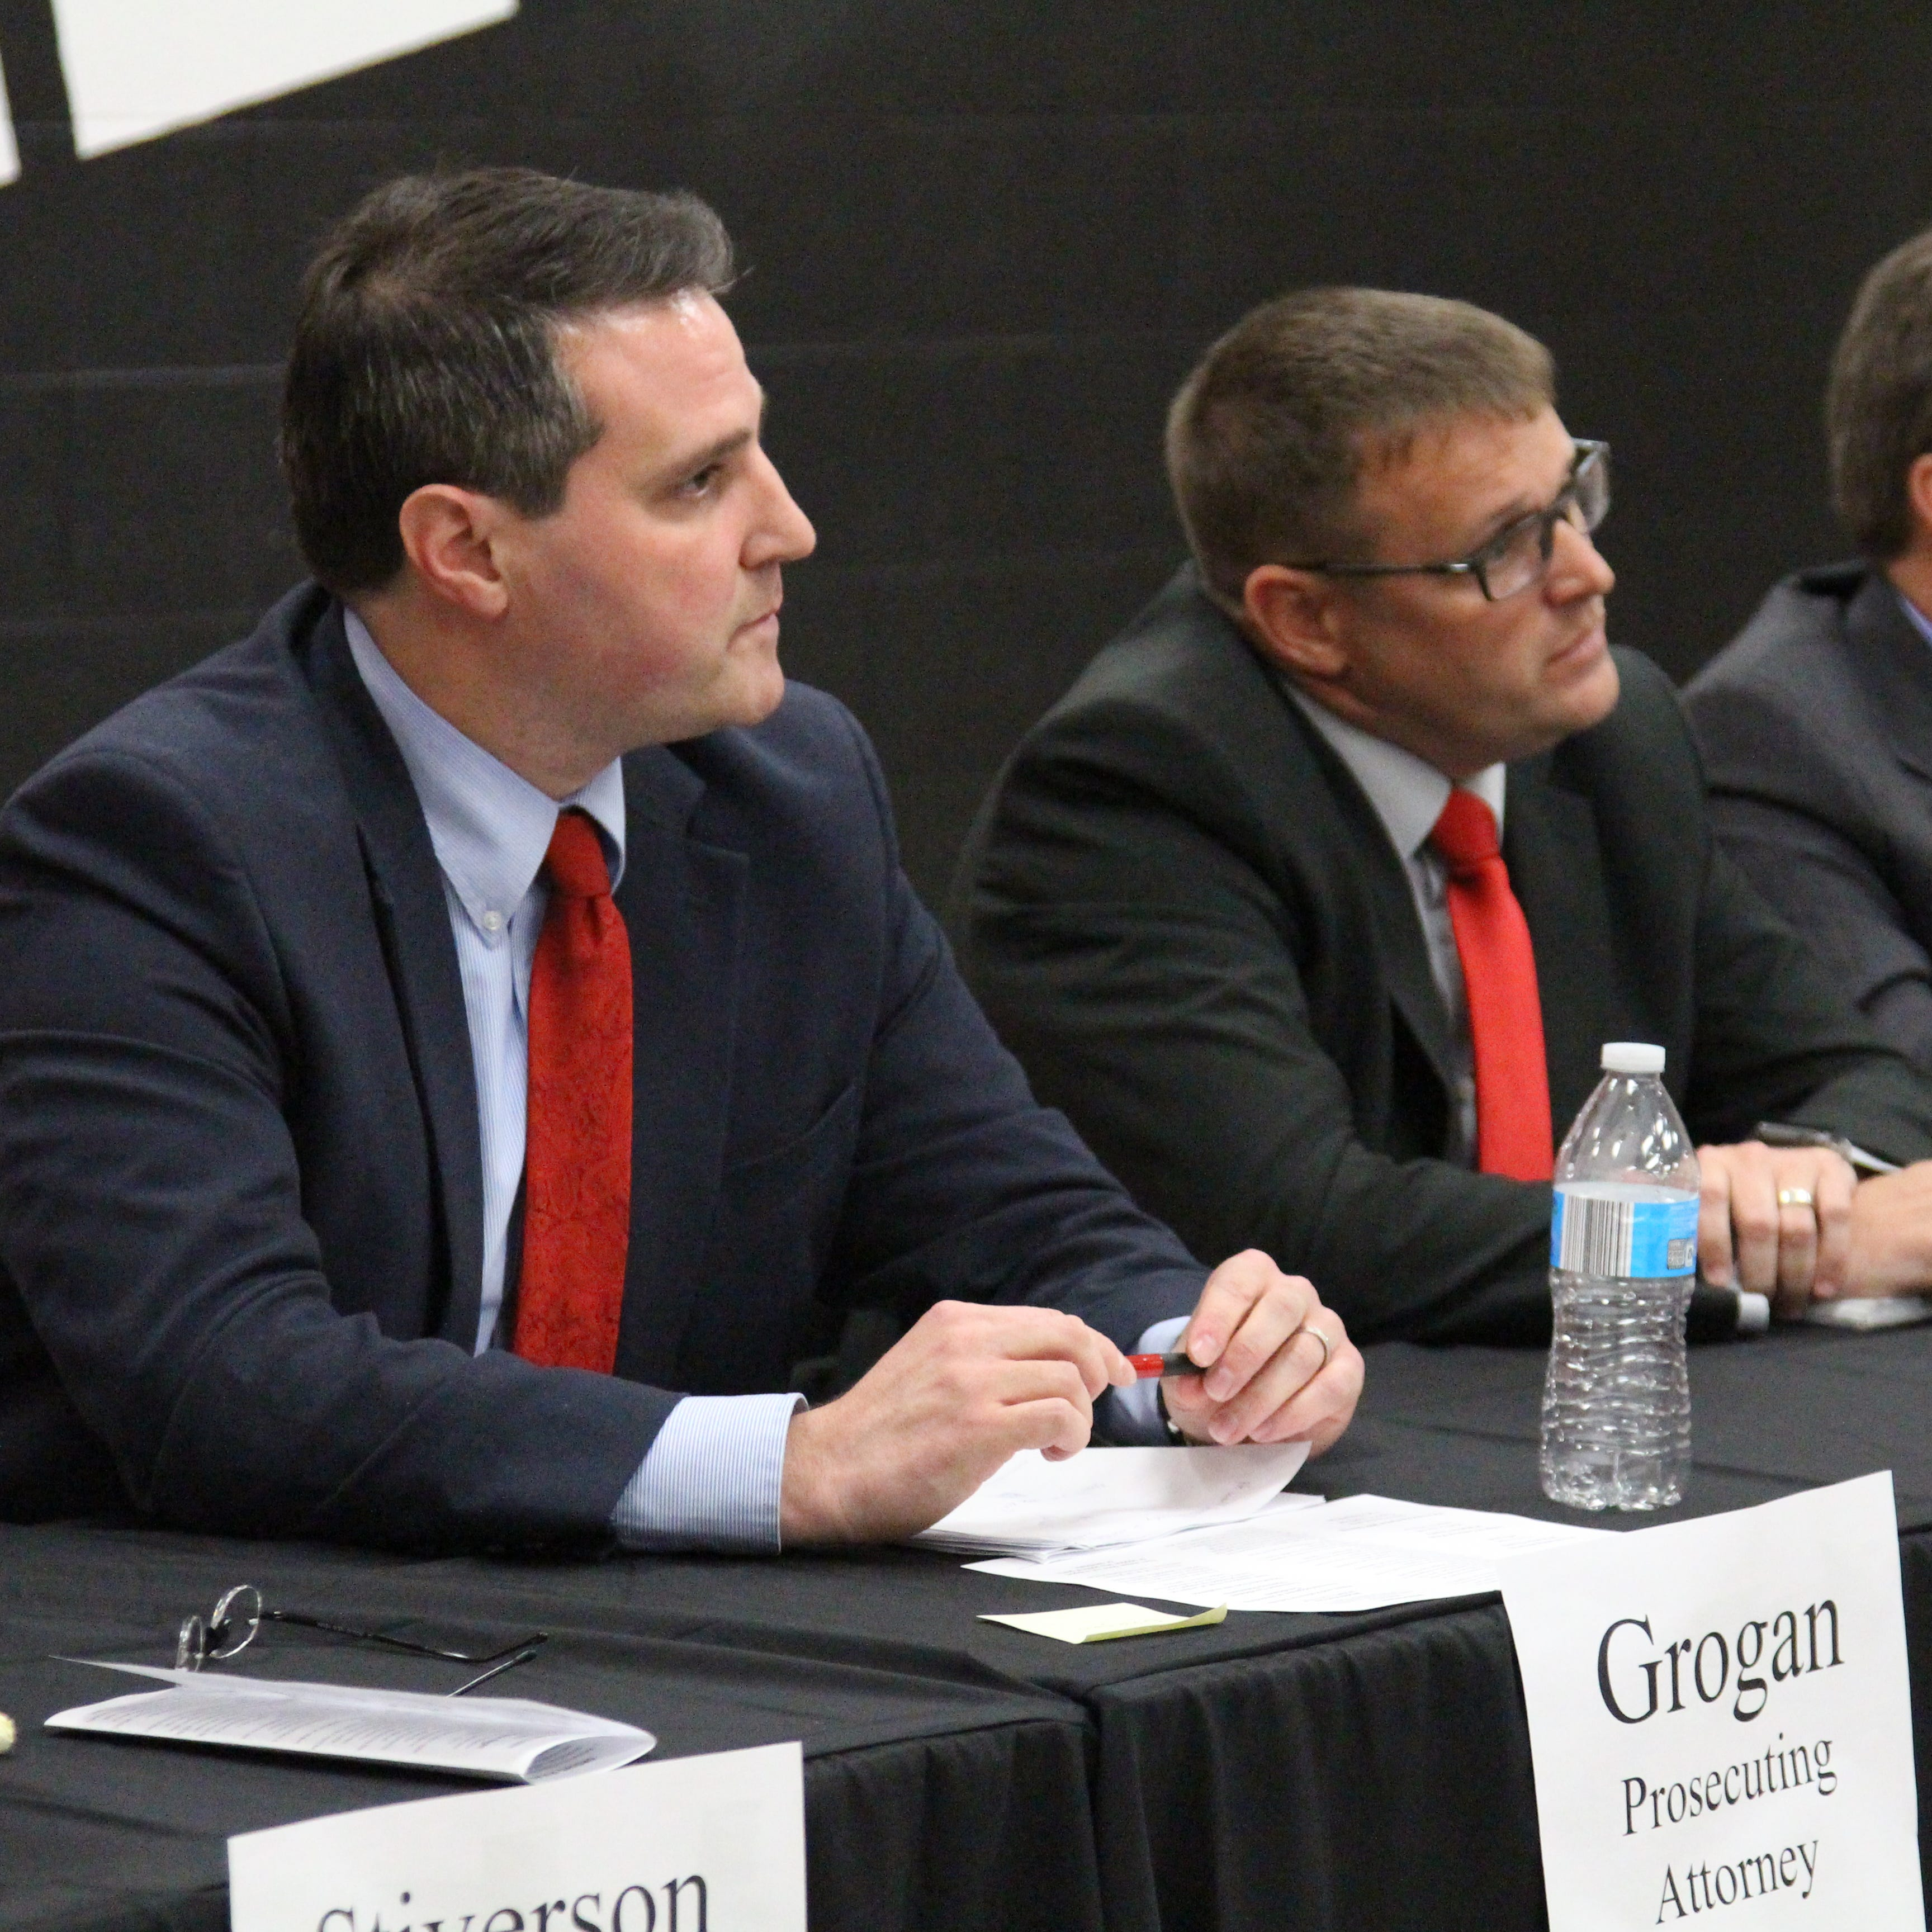 Marion prosecutor candidates differ on drugs, foreclosures